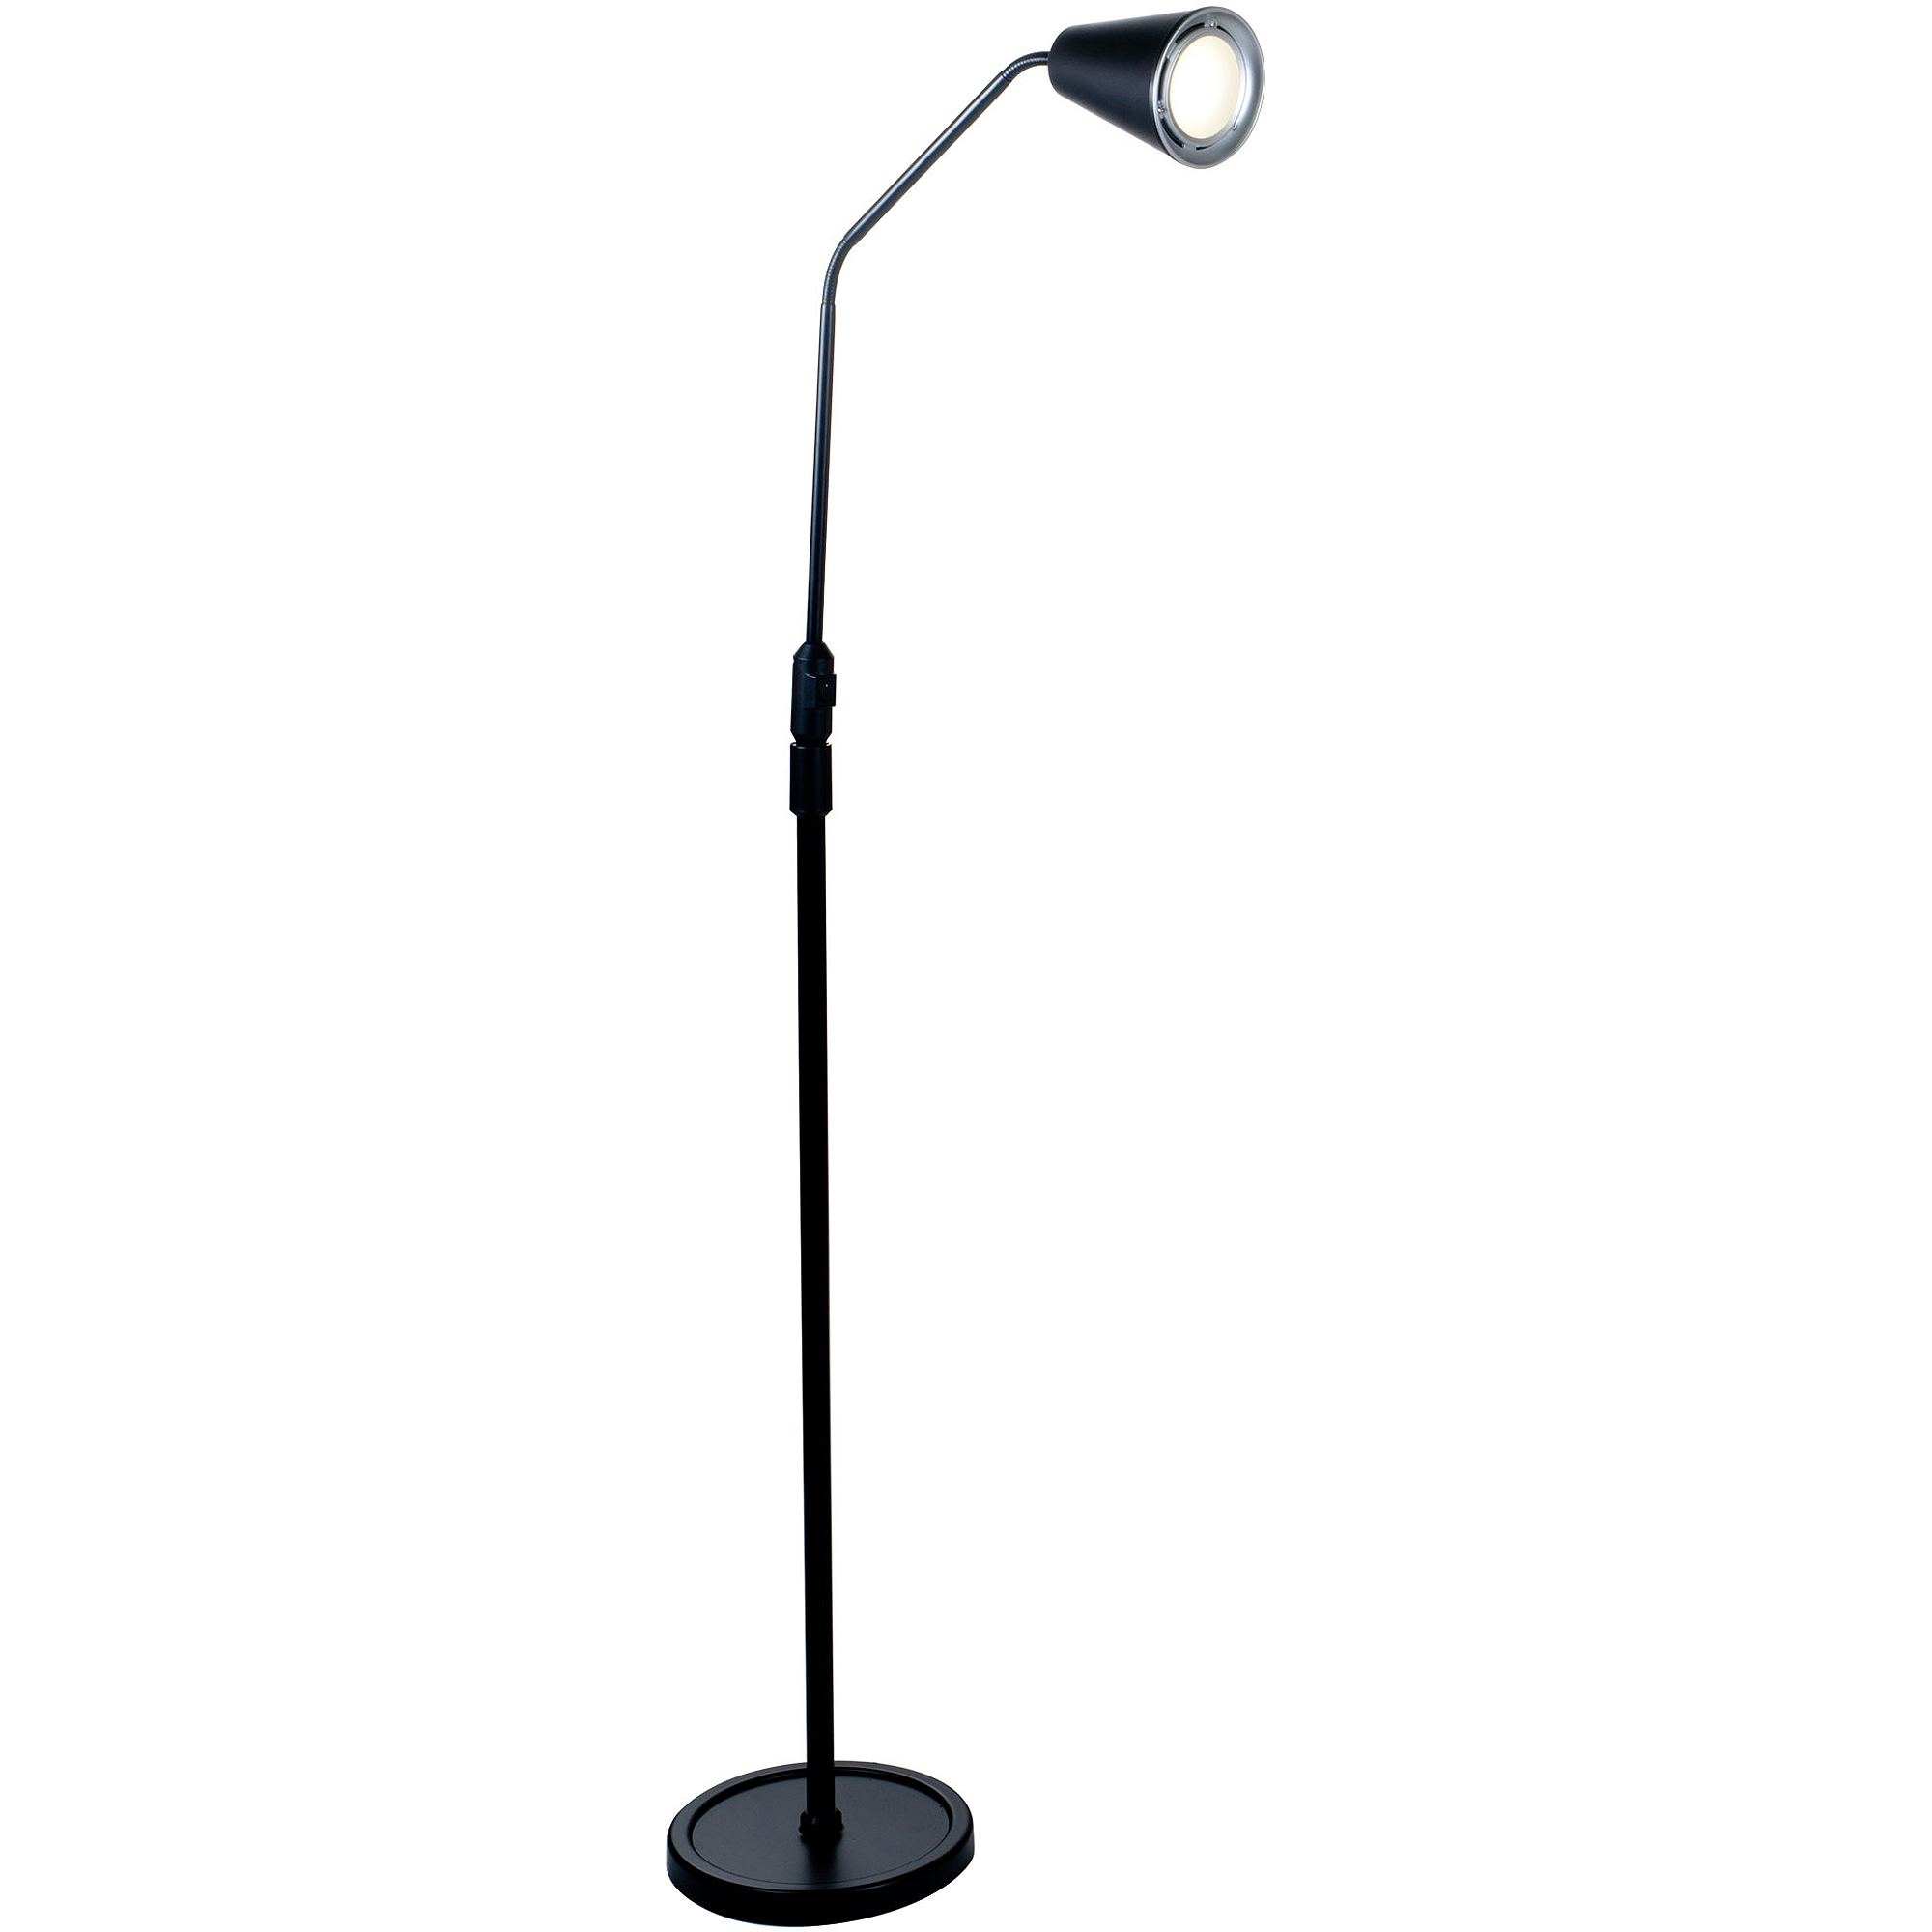 Superb Lavish Home 5u0027 LED Flexible Adjustable Floor Lamp